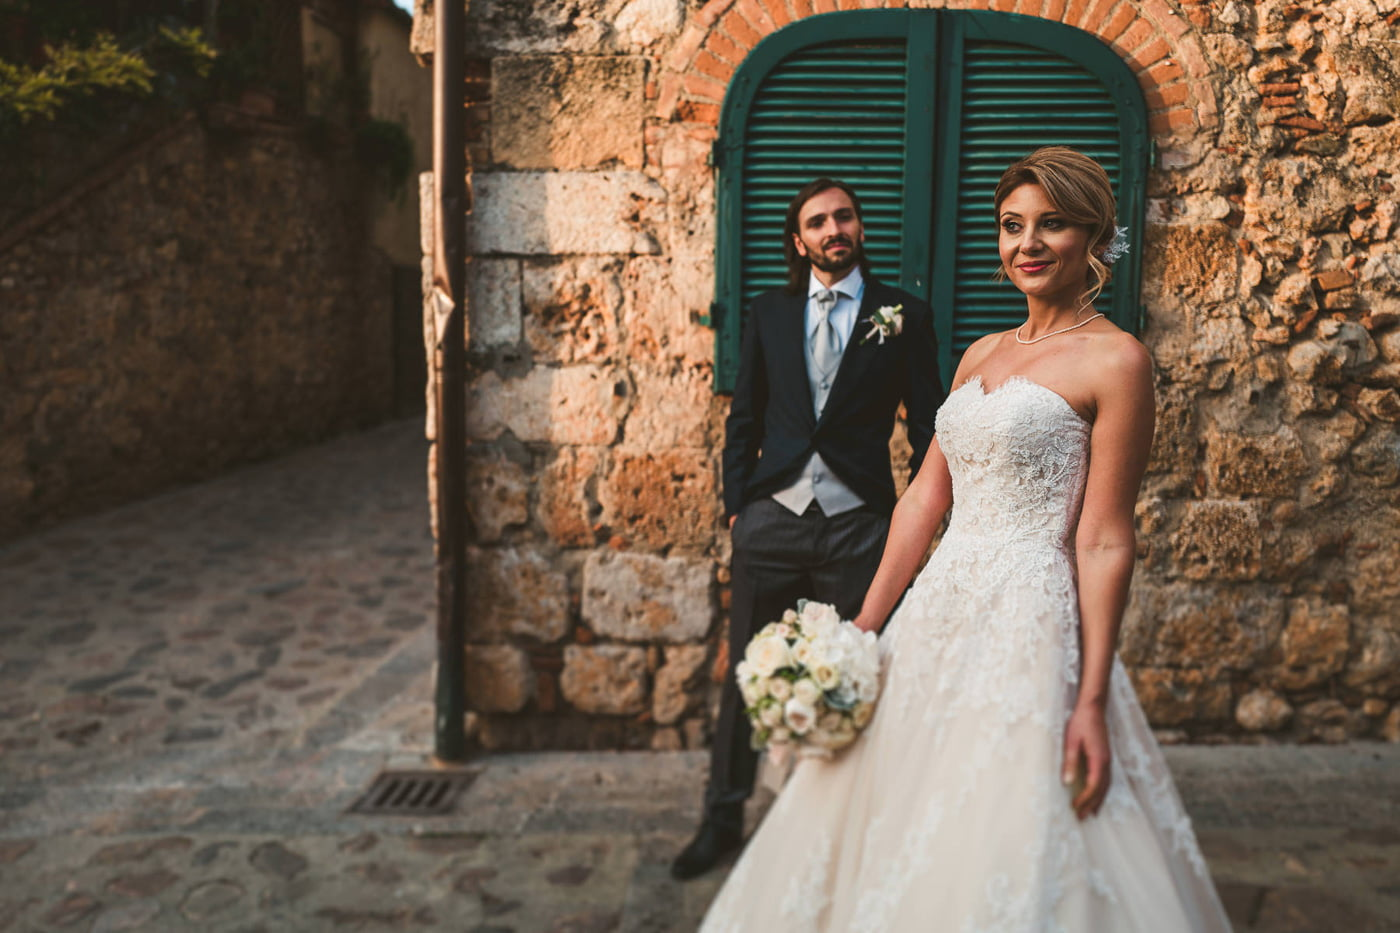 Andrea & Francesca | Wedding at Borgo San Luigi by Federico Pannacci 67